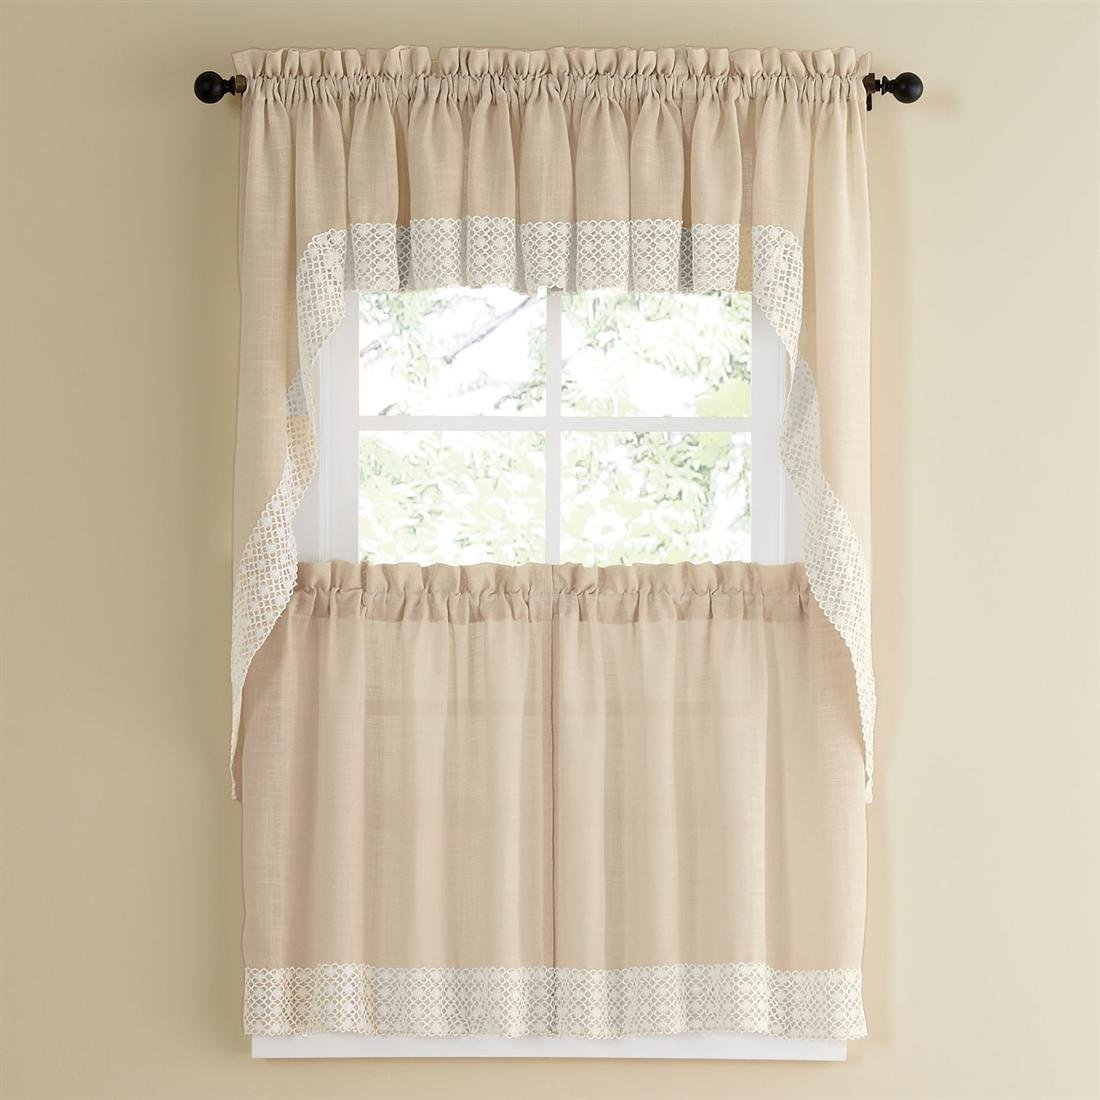 Sweet Home Collection 5 Pc Kitchen Curtain Set - Valance Swag Choice of 24'' or 36'' Tier Pair, Salem French Vanilla